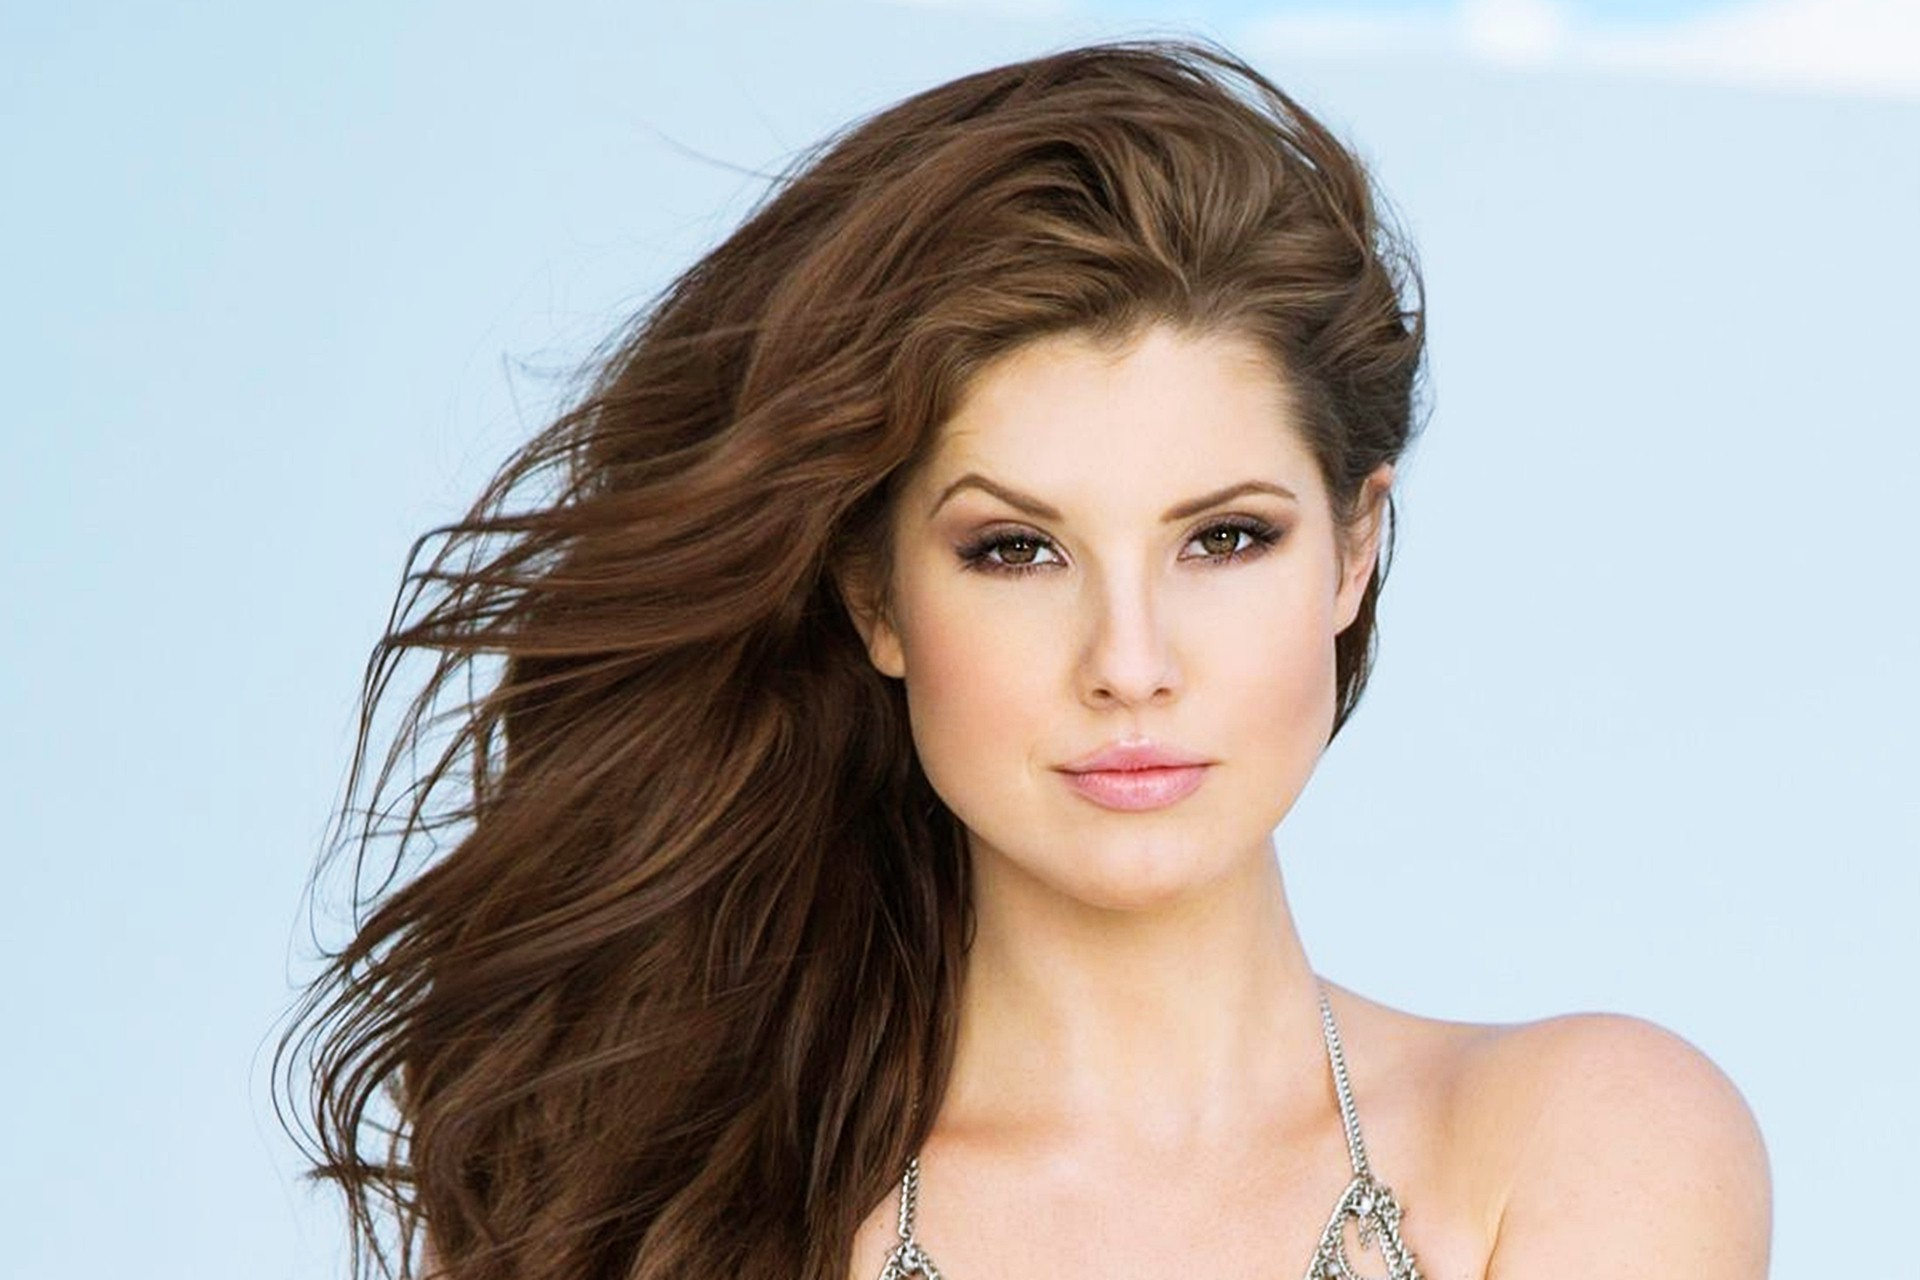 wonderfull amanda cerny style mobile hd background free desktop wallpaper